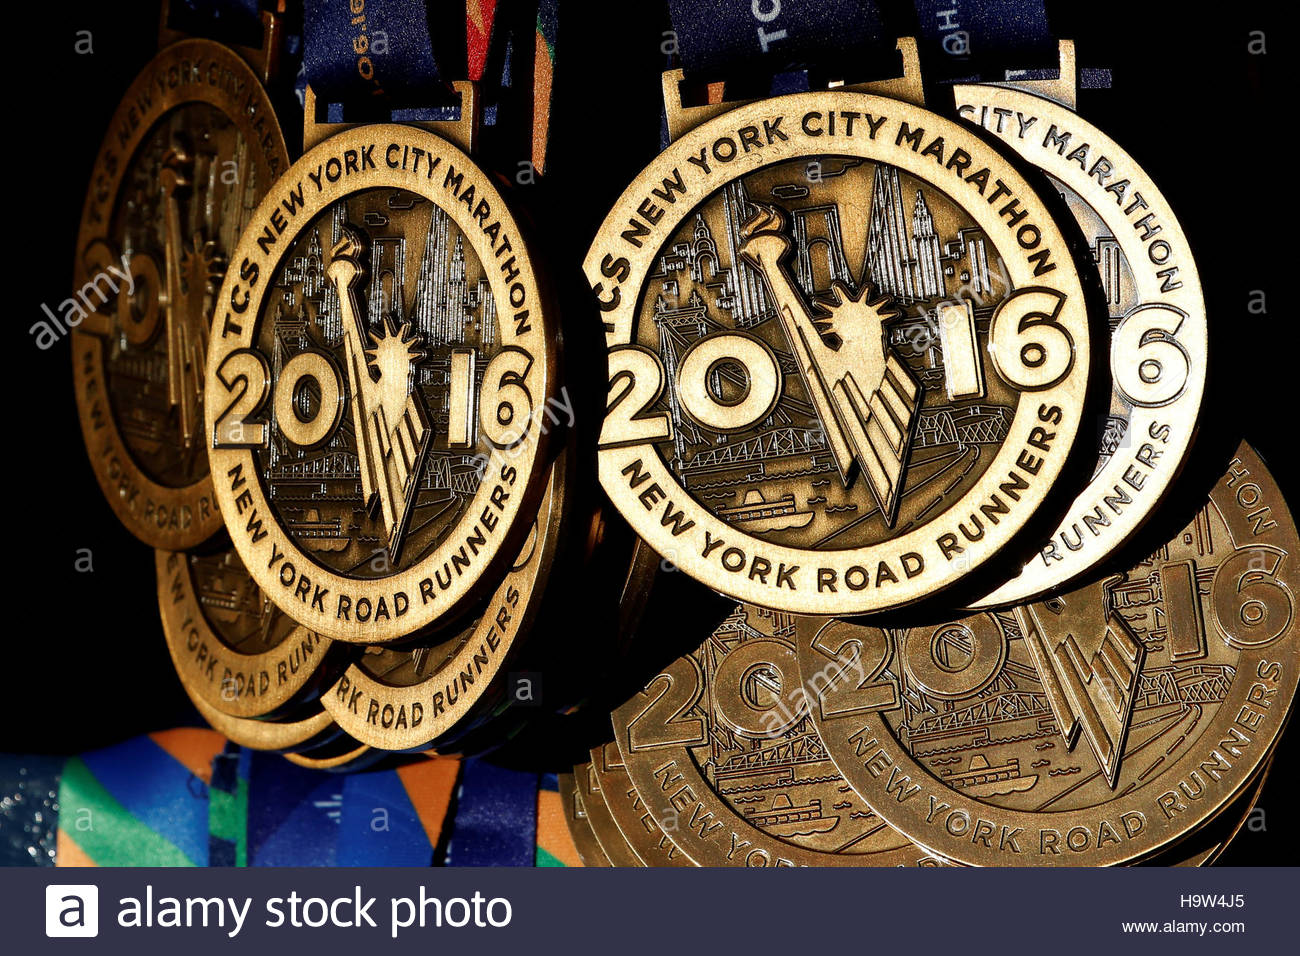 Medals are seen hanging ready for runners near the finish line ahead of the start of the 2016 New York City Marathon Stock Foto